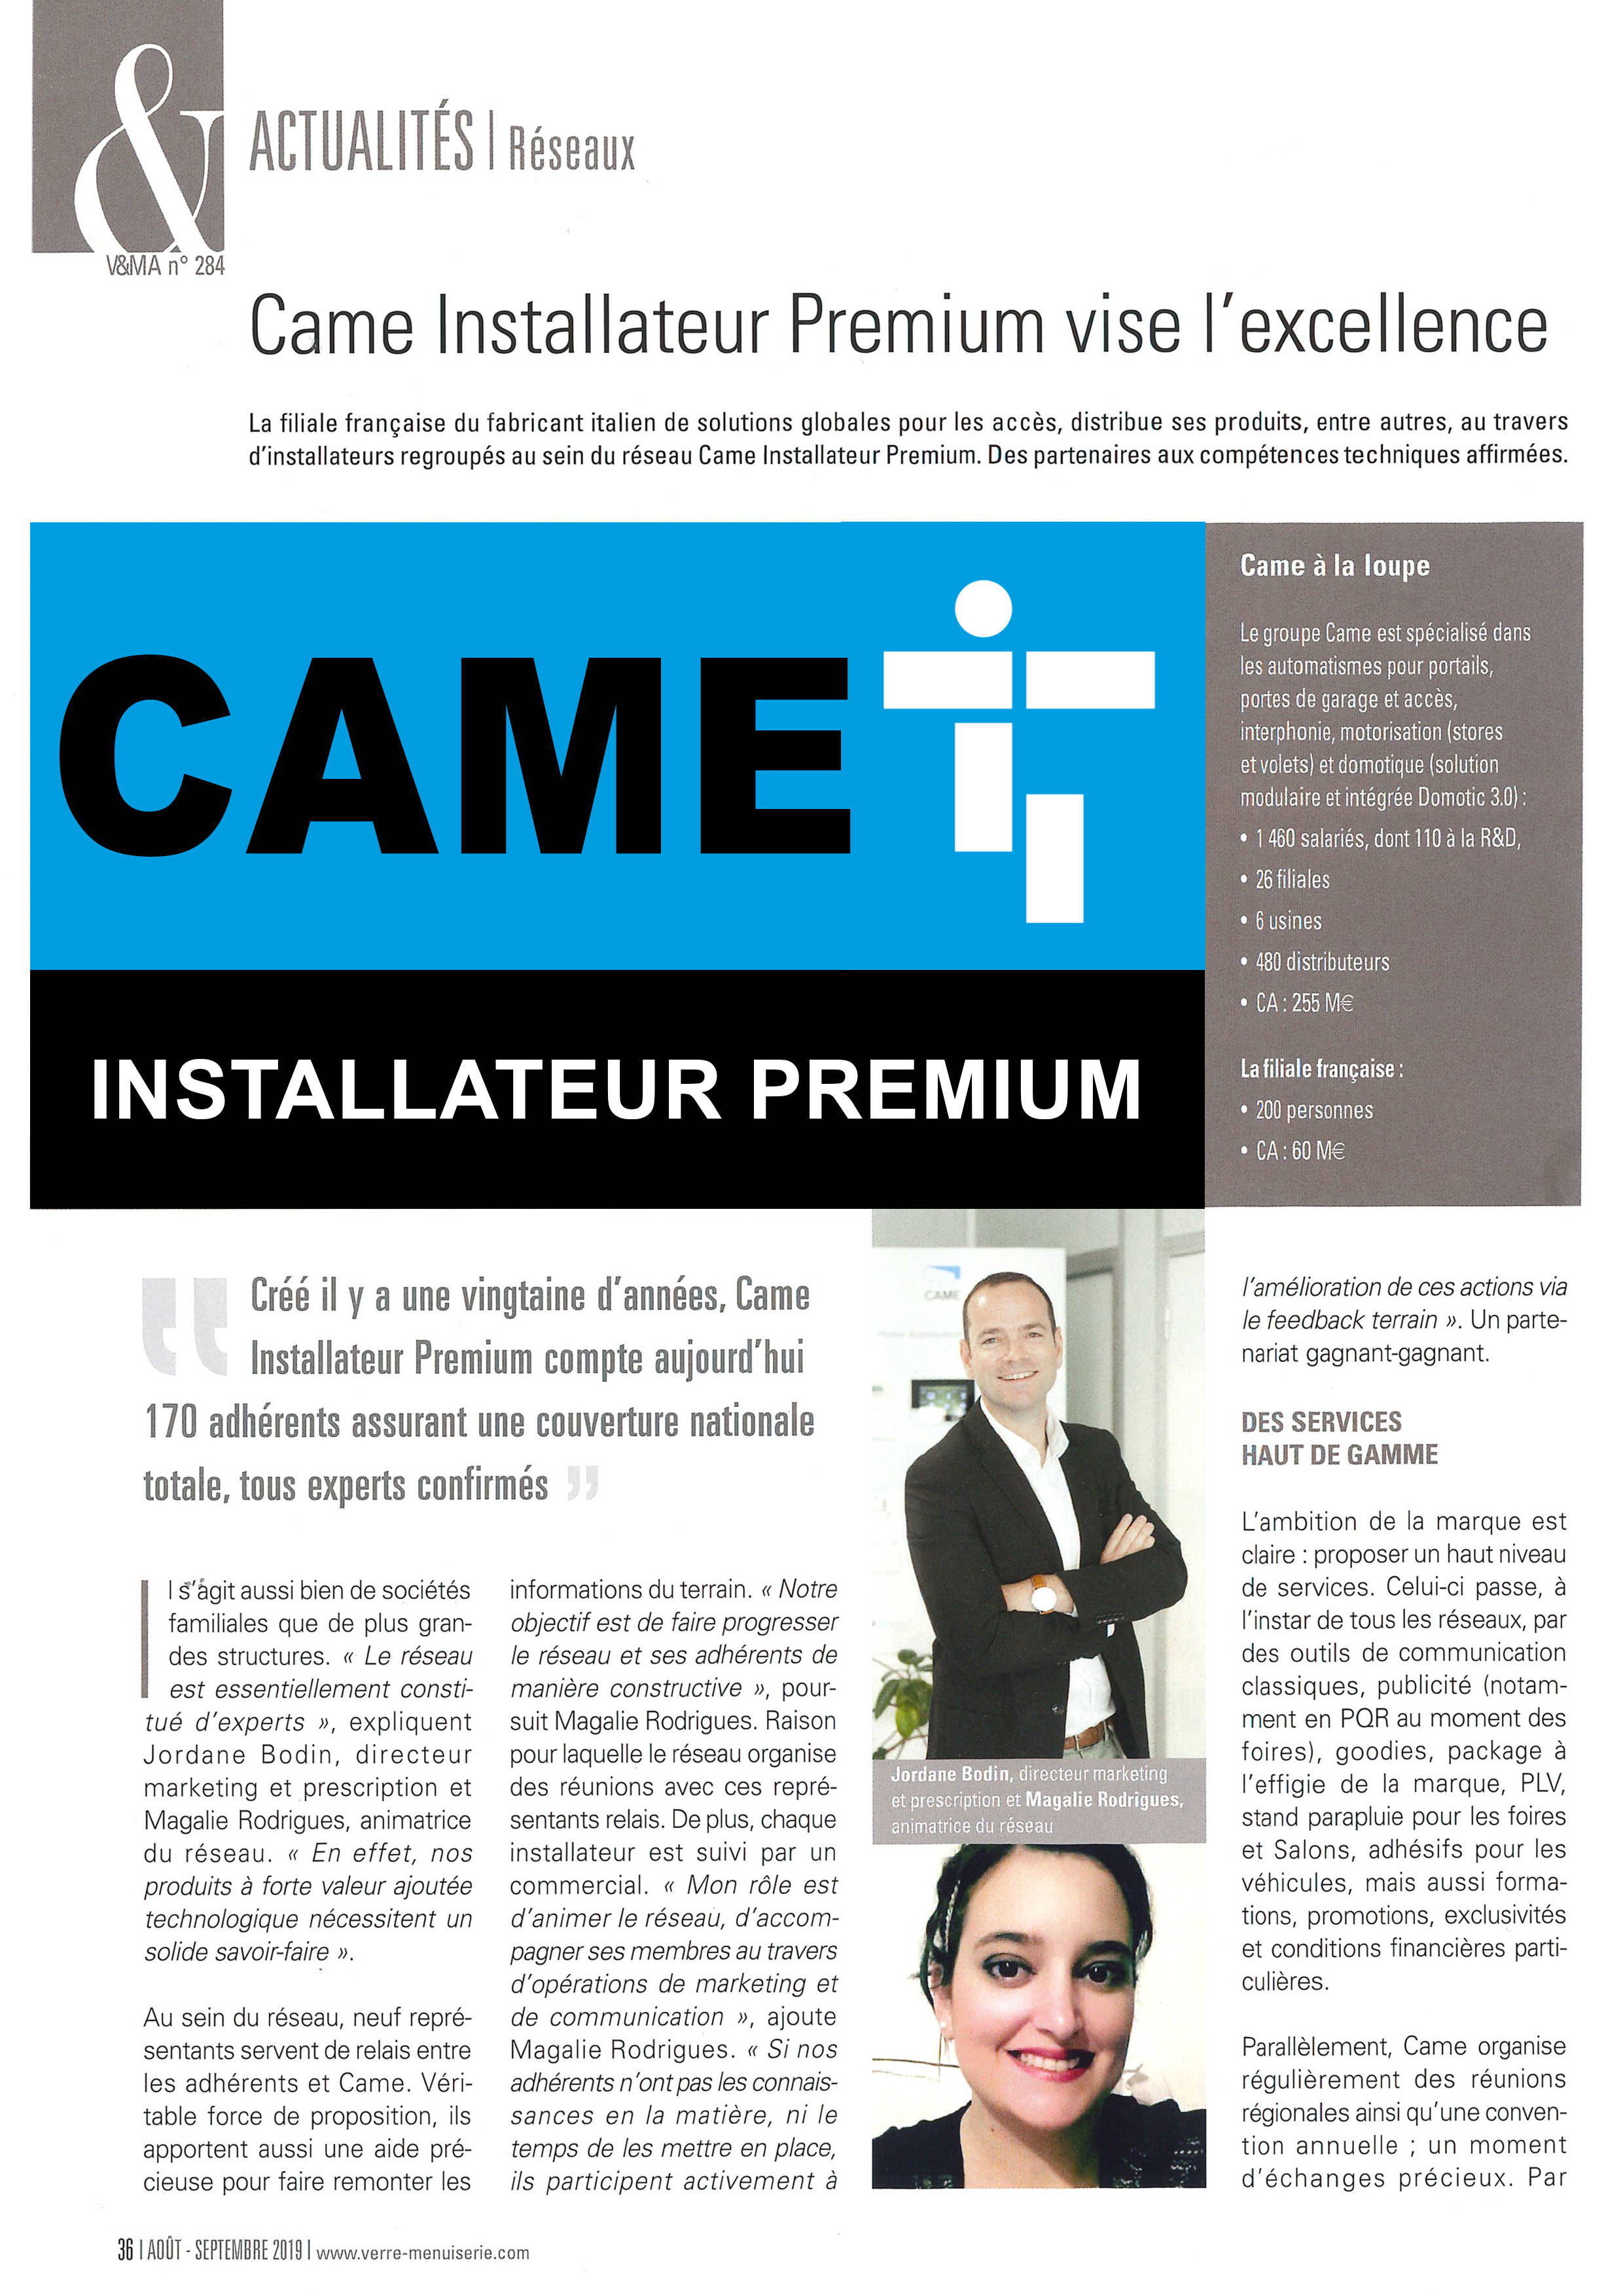 ARTICLE PRESSE came dubard automatismes